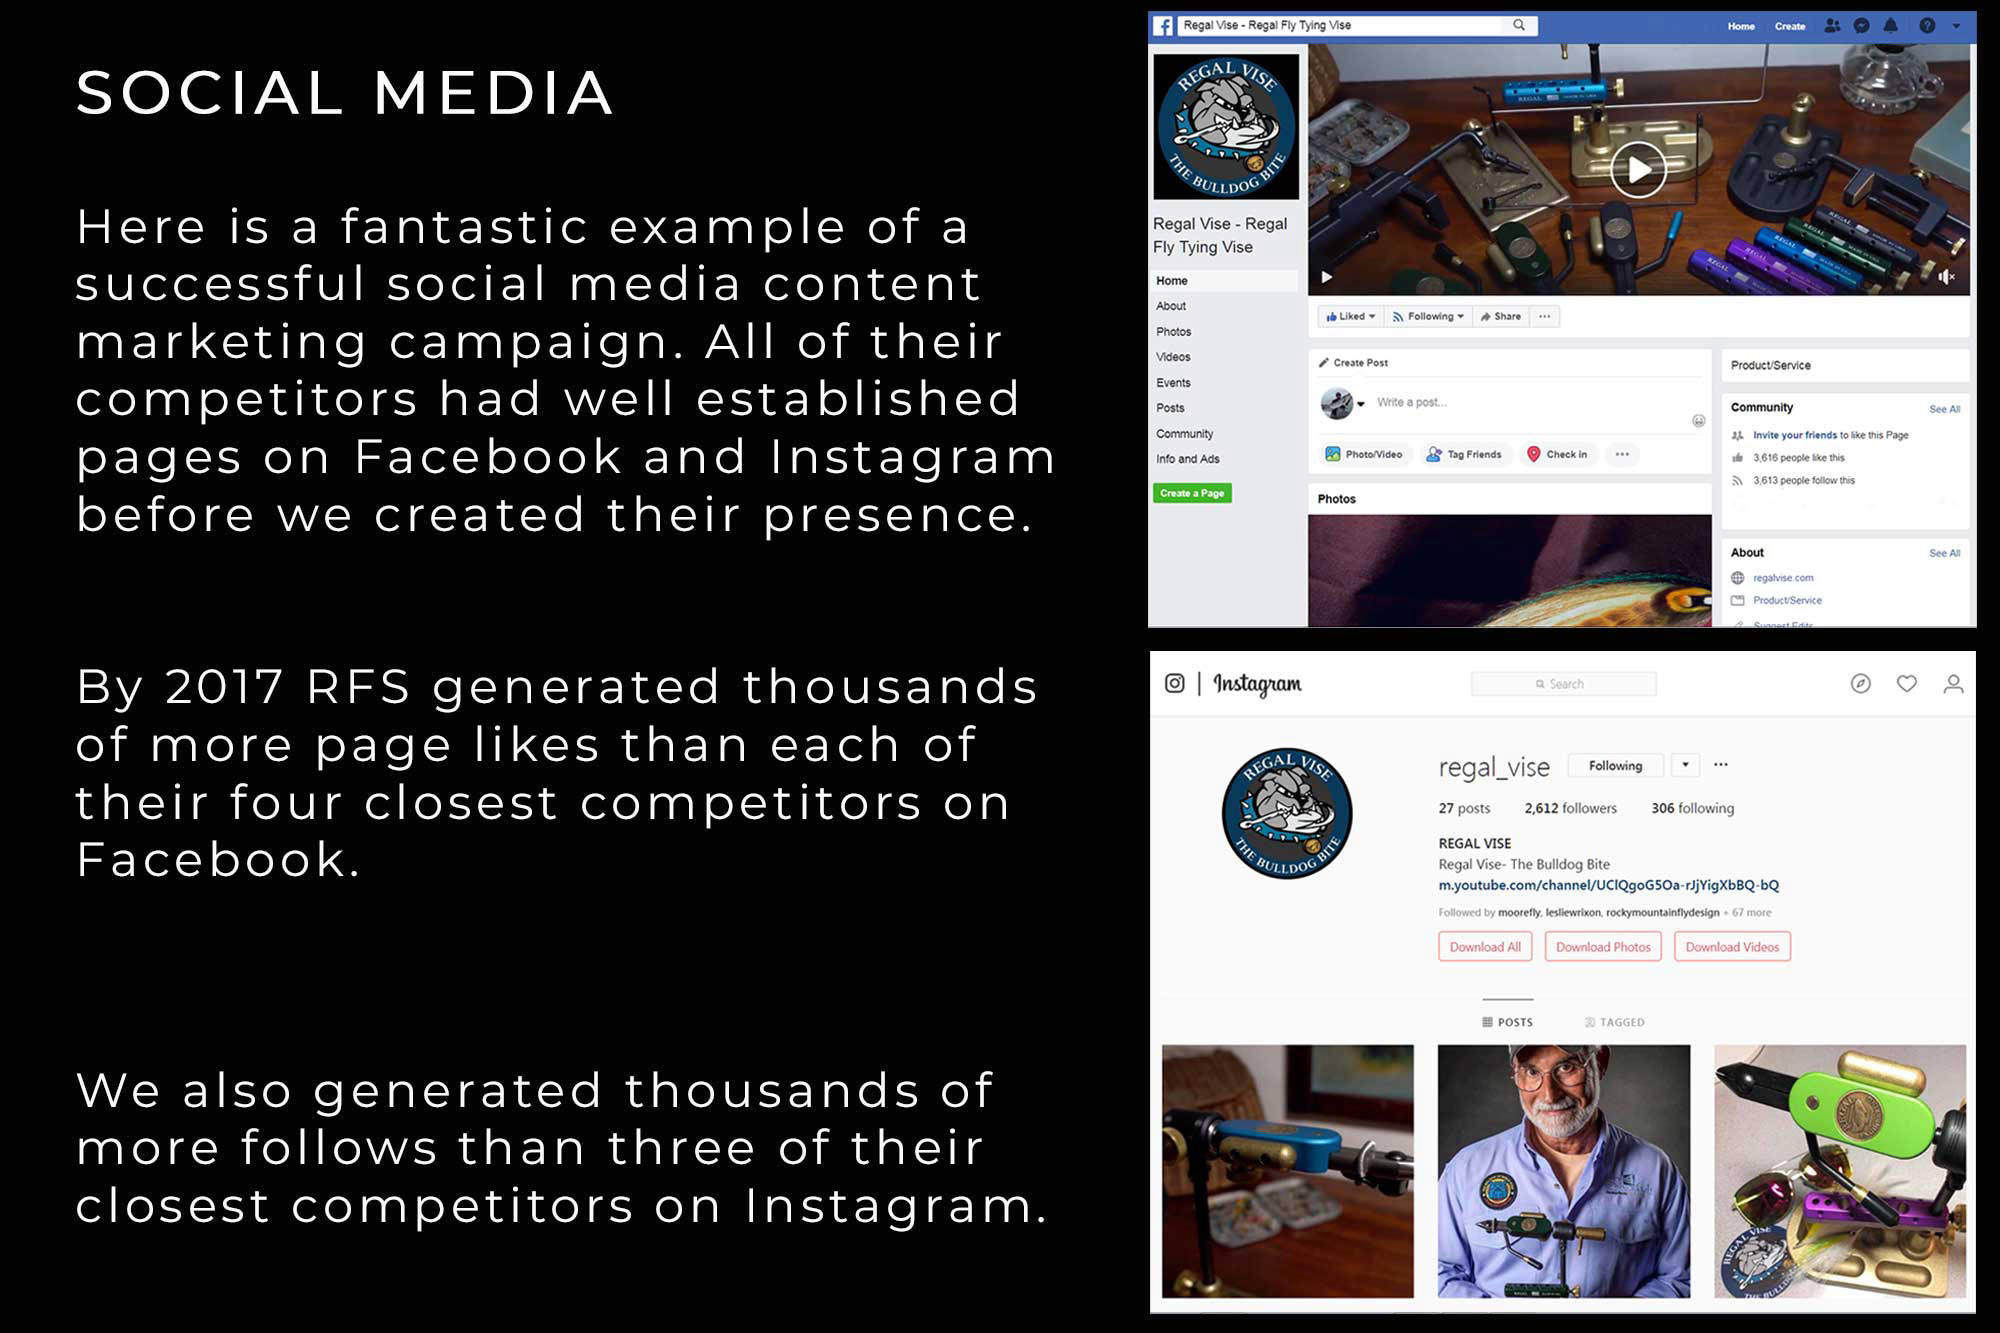 Social Media Management information image